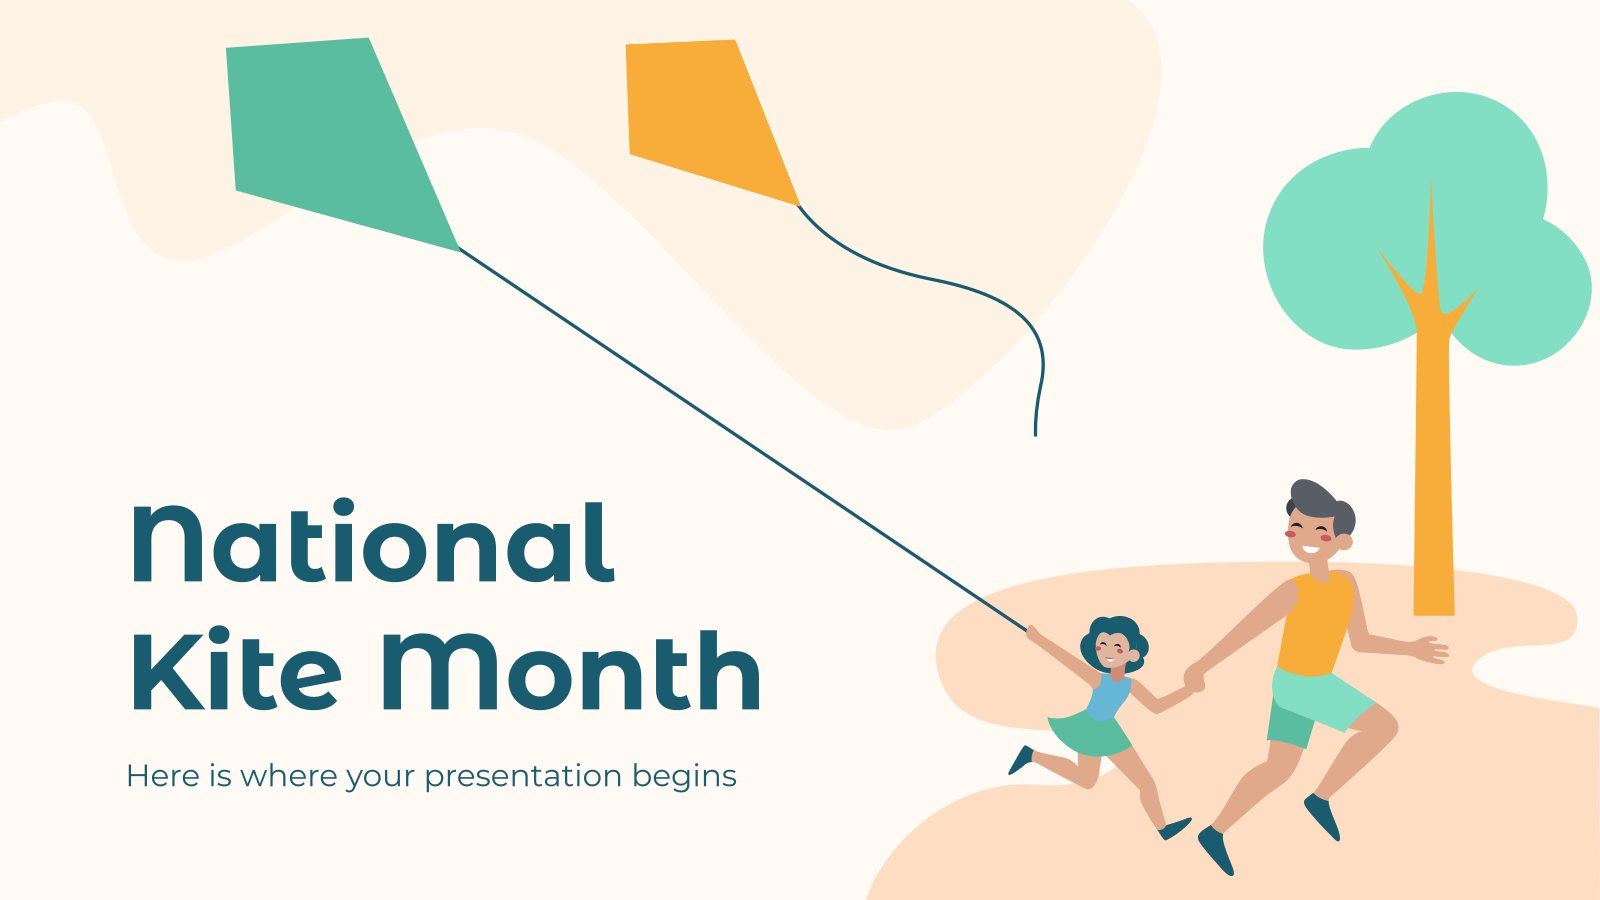 National Kite Month presentation template